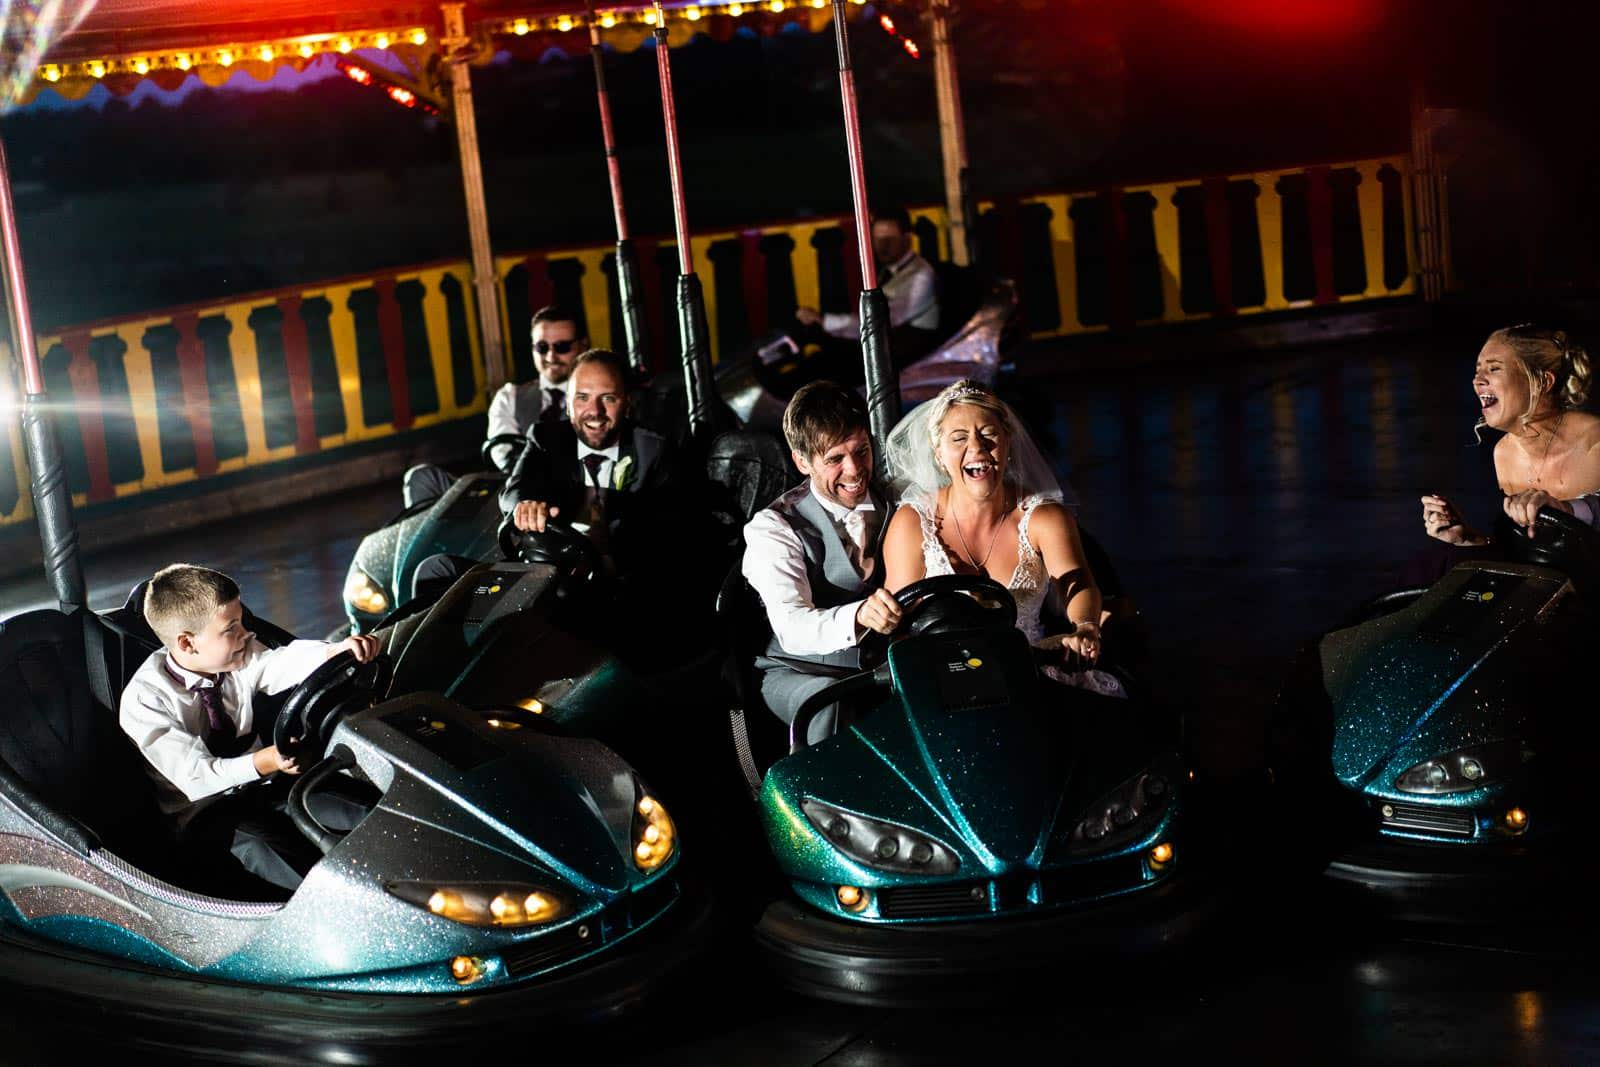 Crockwell Farm Wedding with dodgems